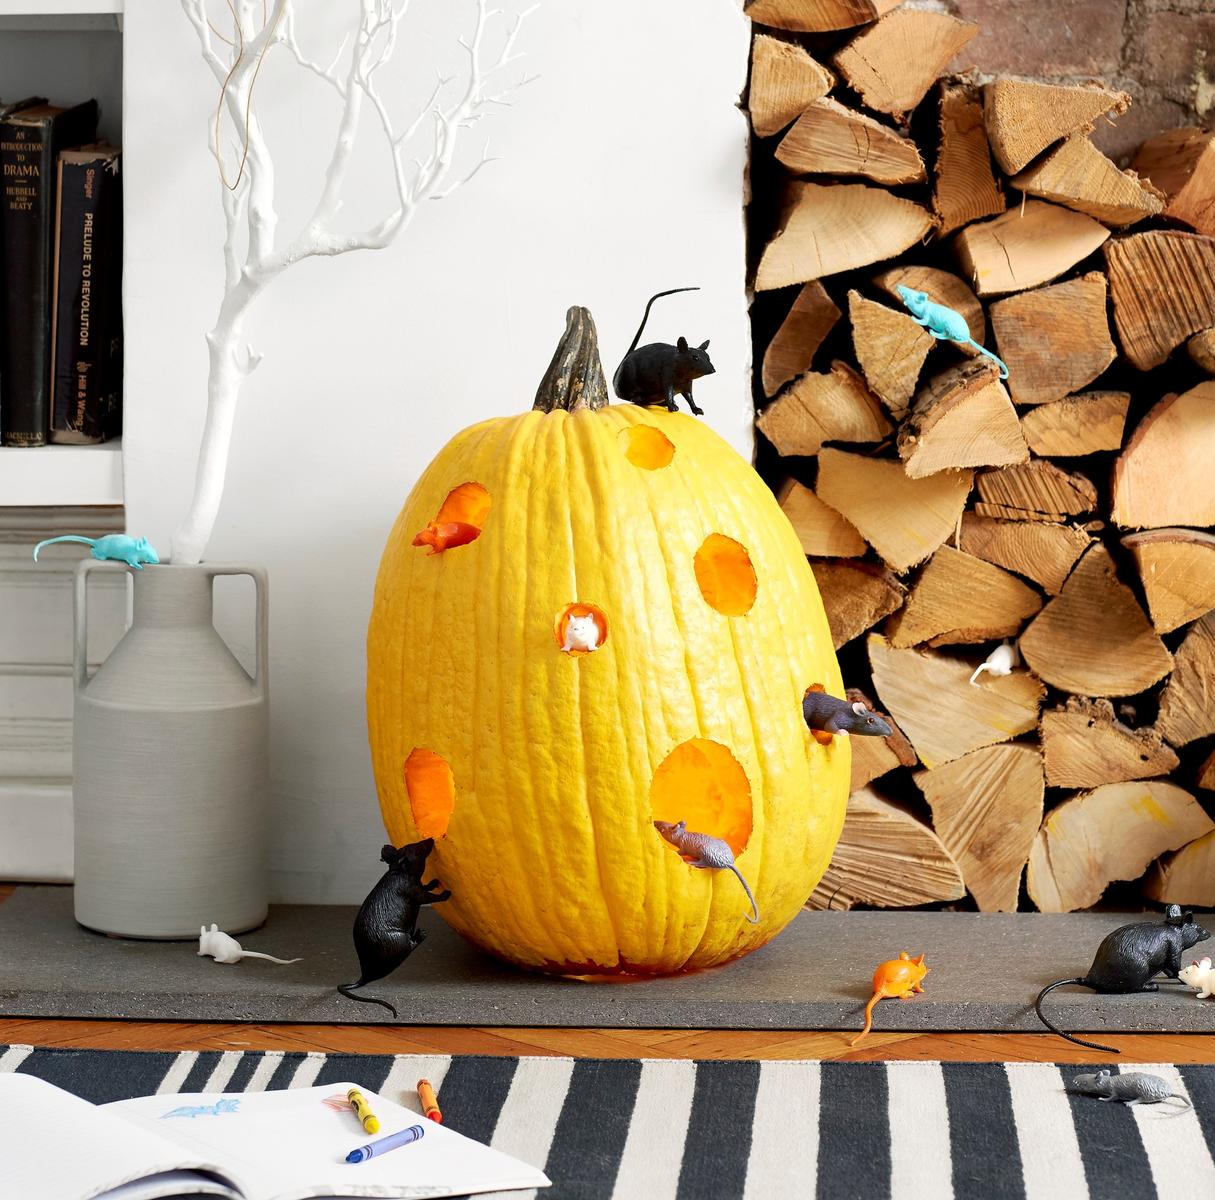 Toy Pumpkin Decorate The Big Cheese